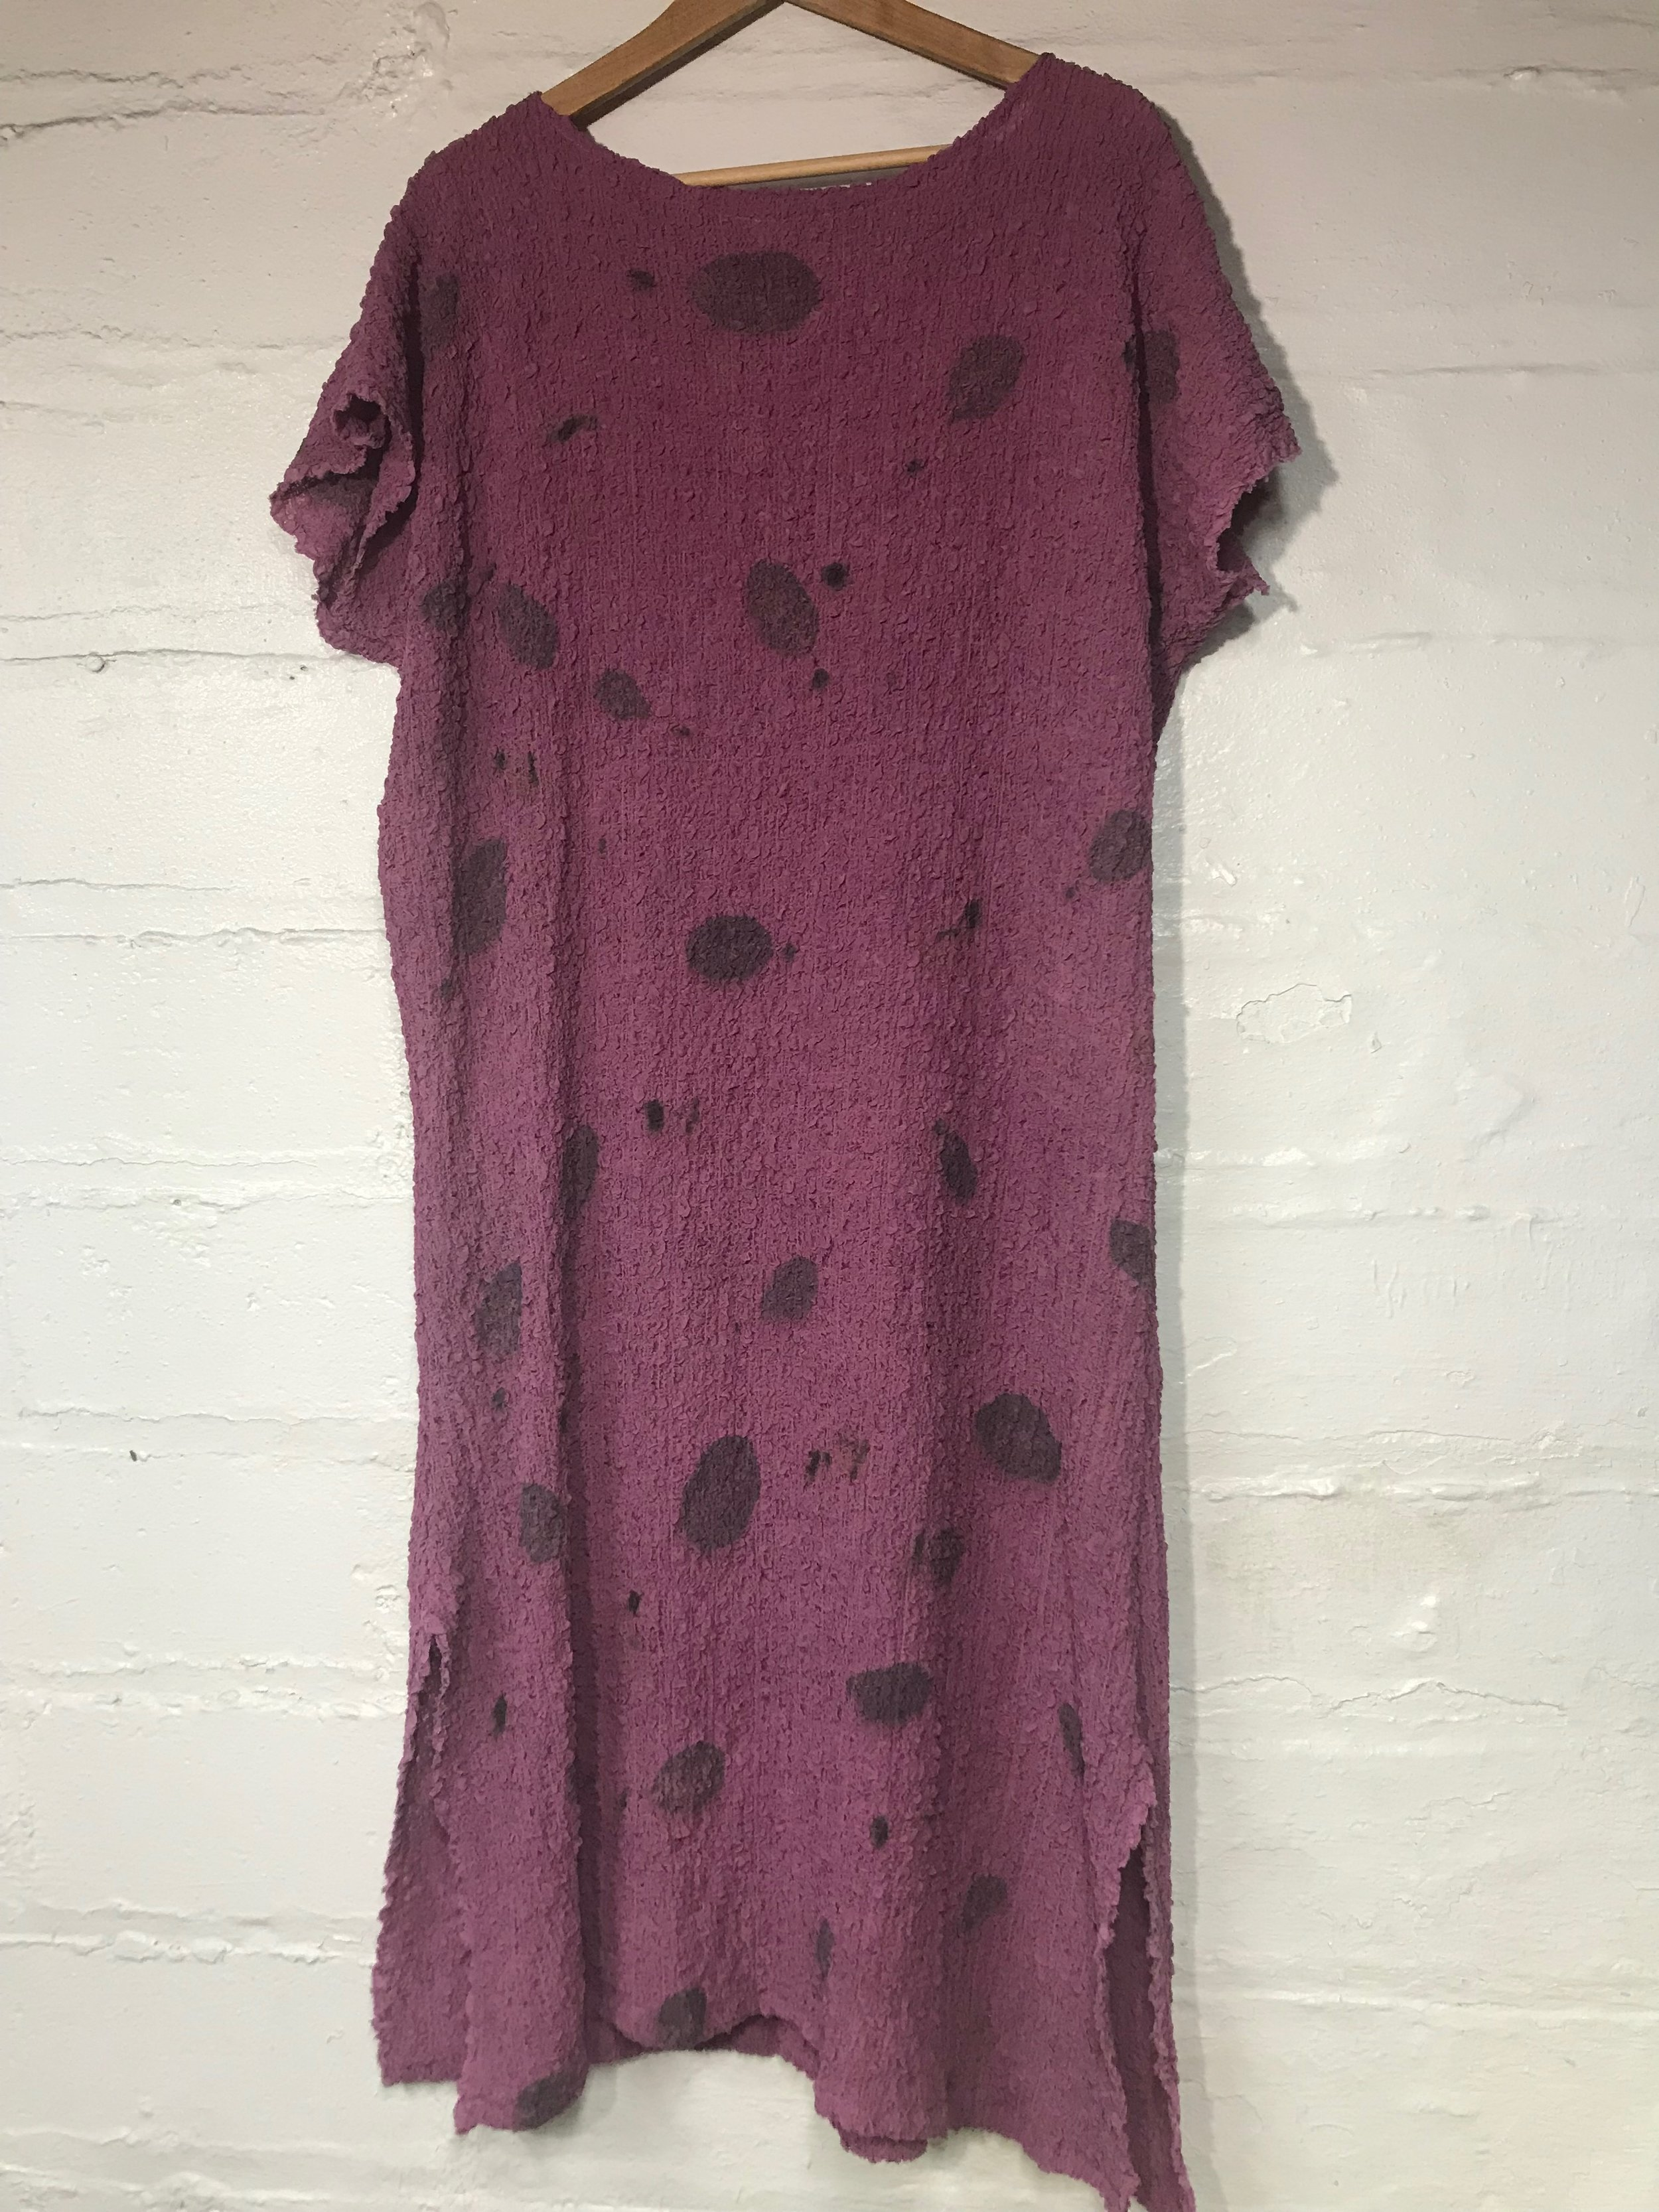 Textured silk dyed in cochineal and printed with smokebush leaves.